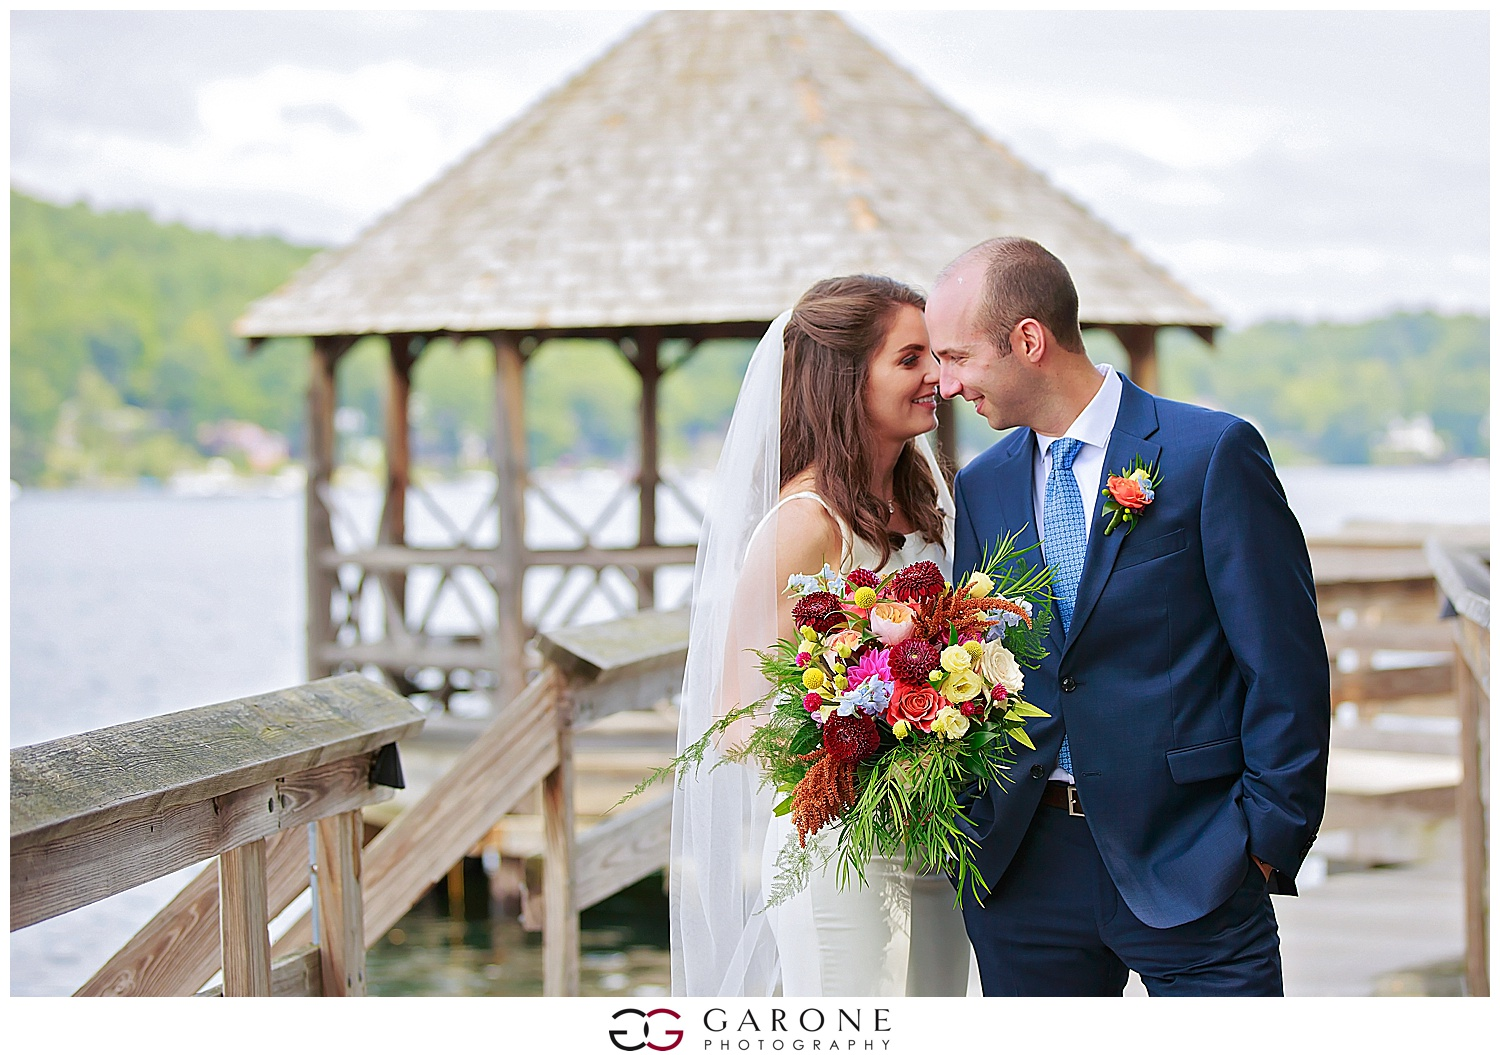 Church_Landing_Garone_Photography_Wedding_Sarah_Patrick_0015.jpg